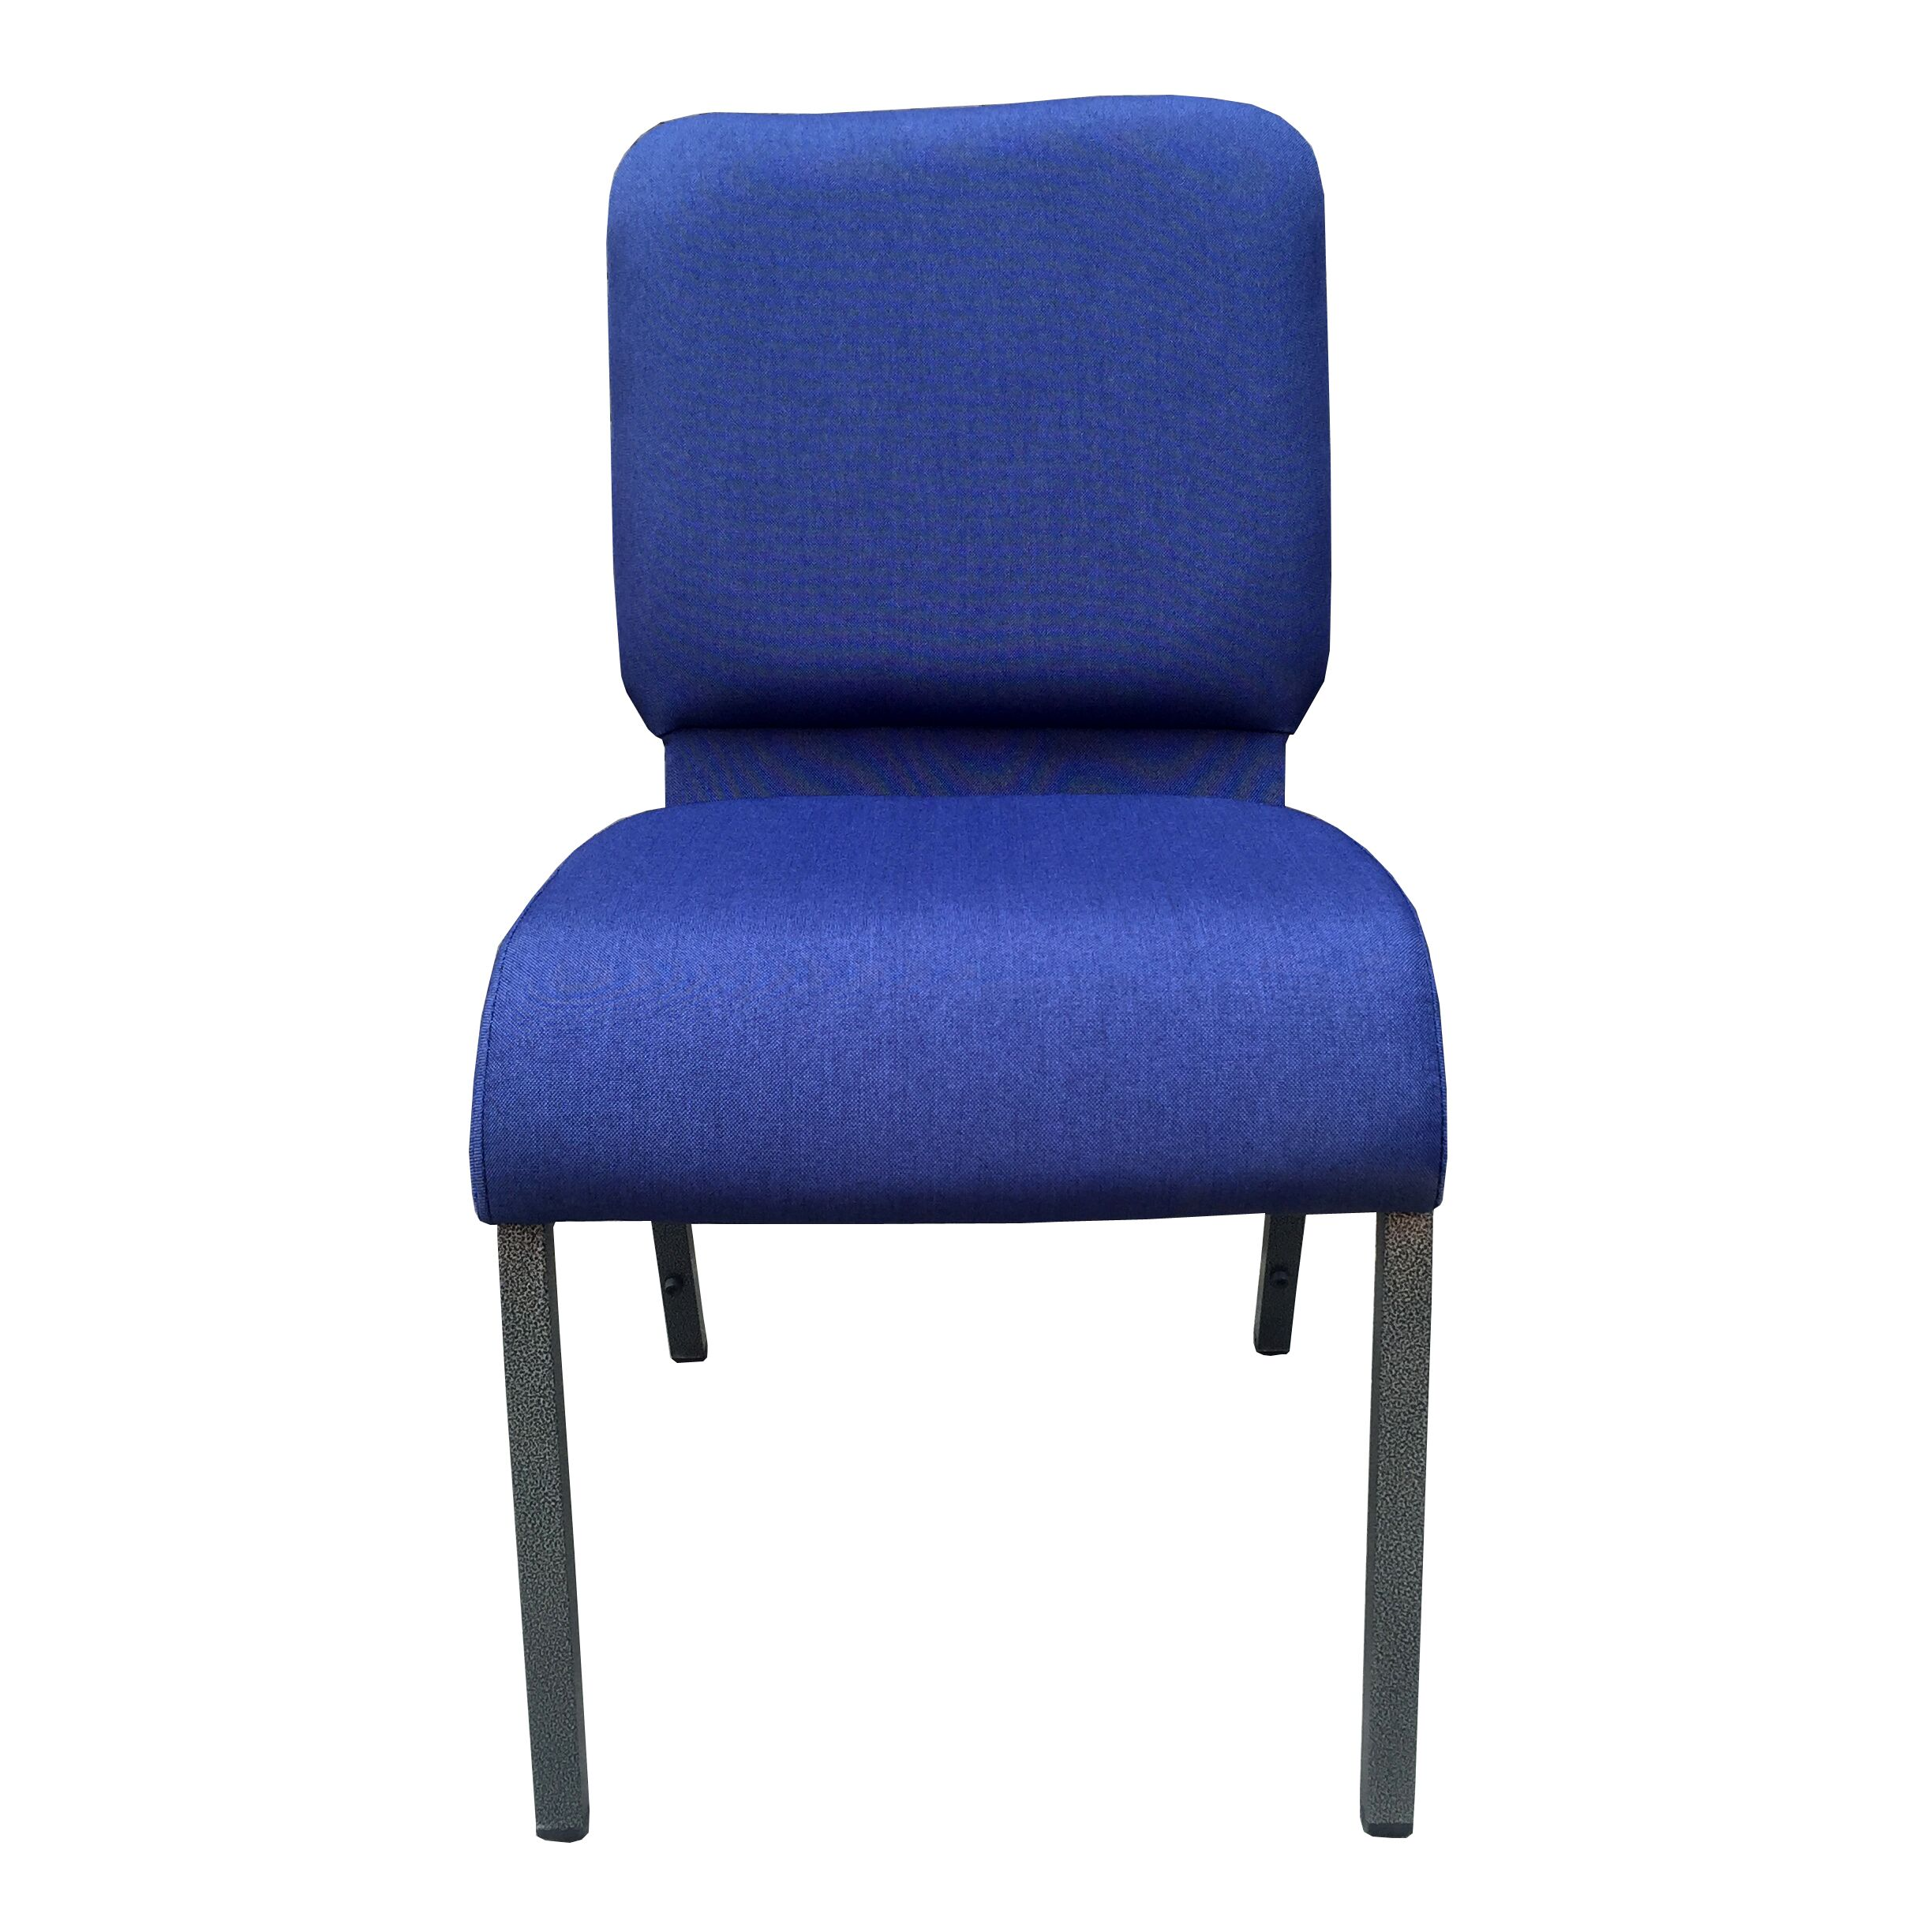 Factory making Cello Plastic Chairs Price -